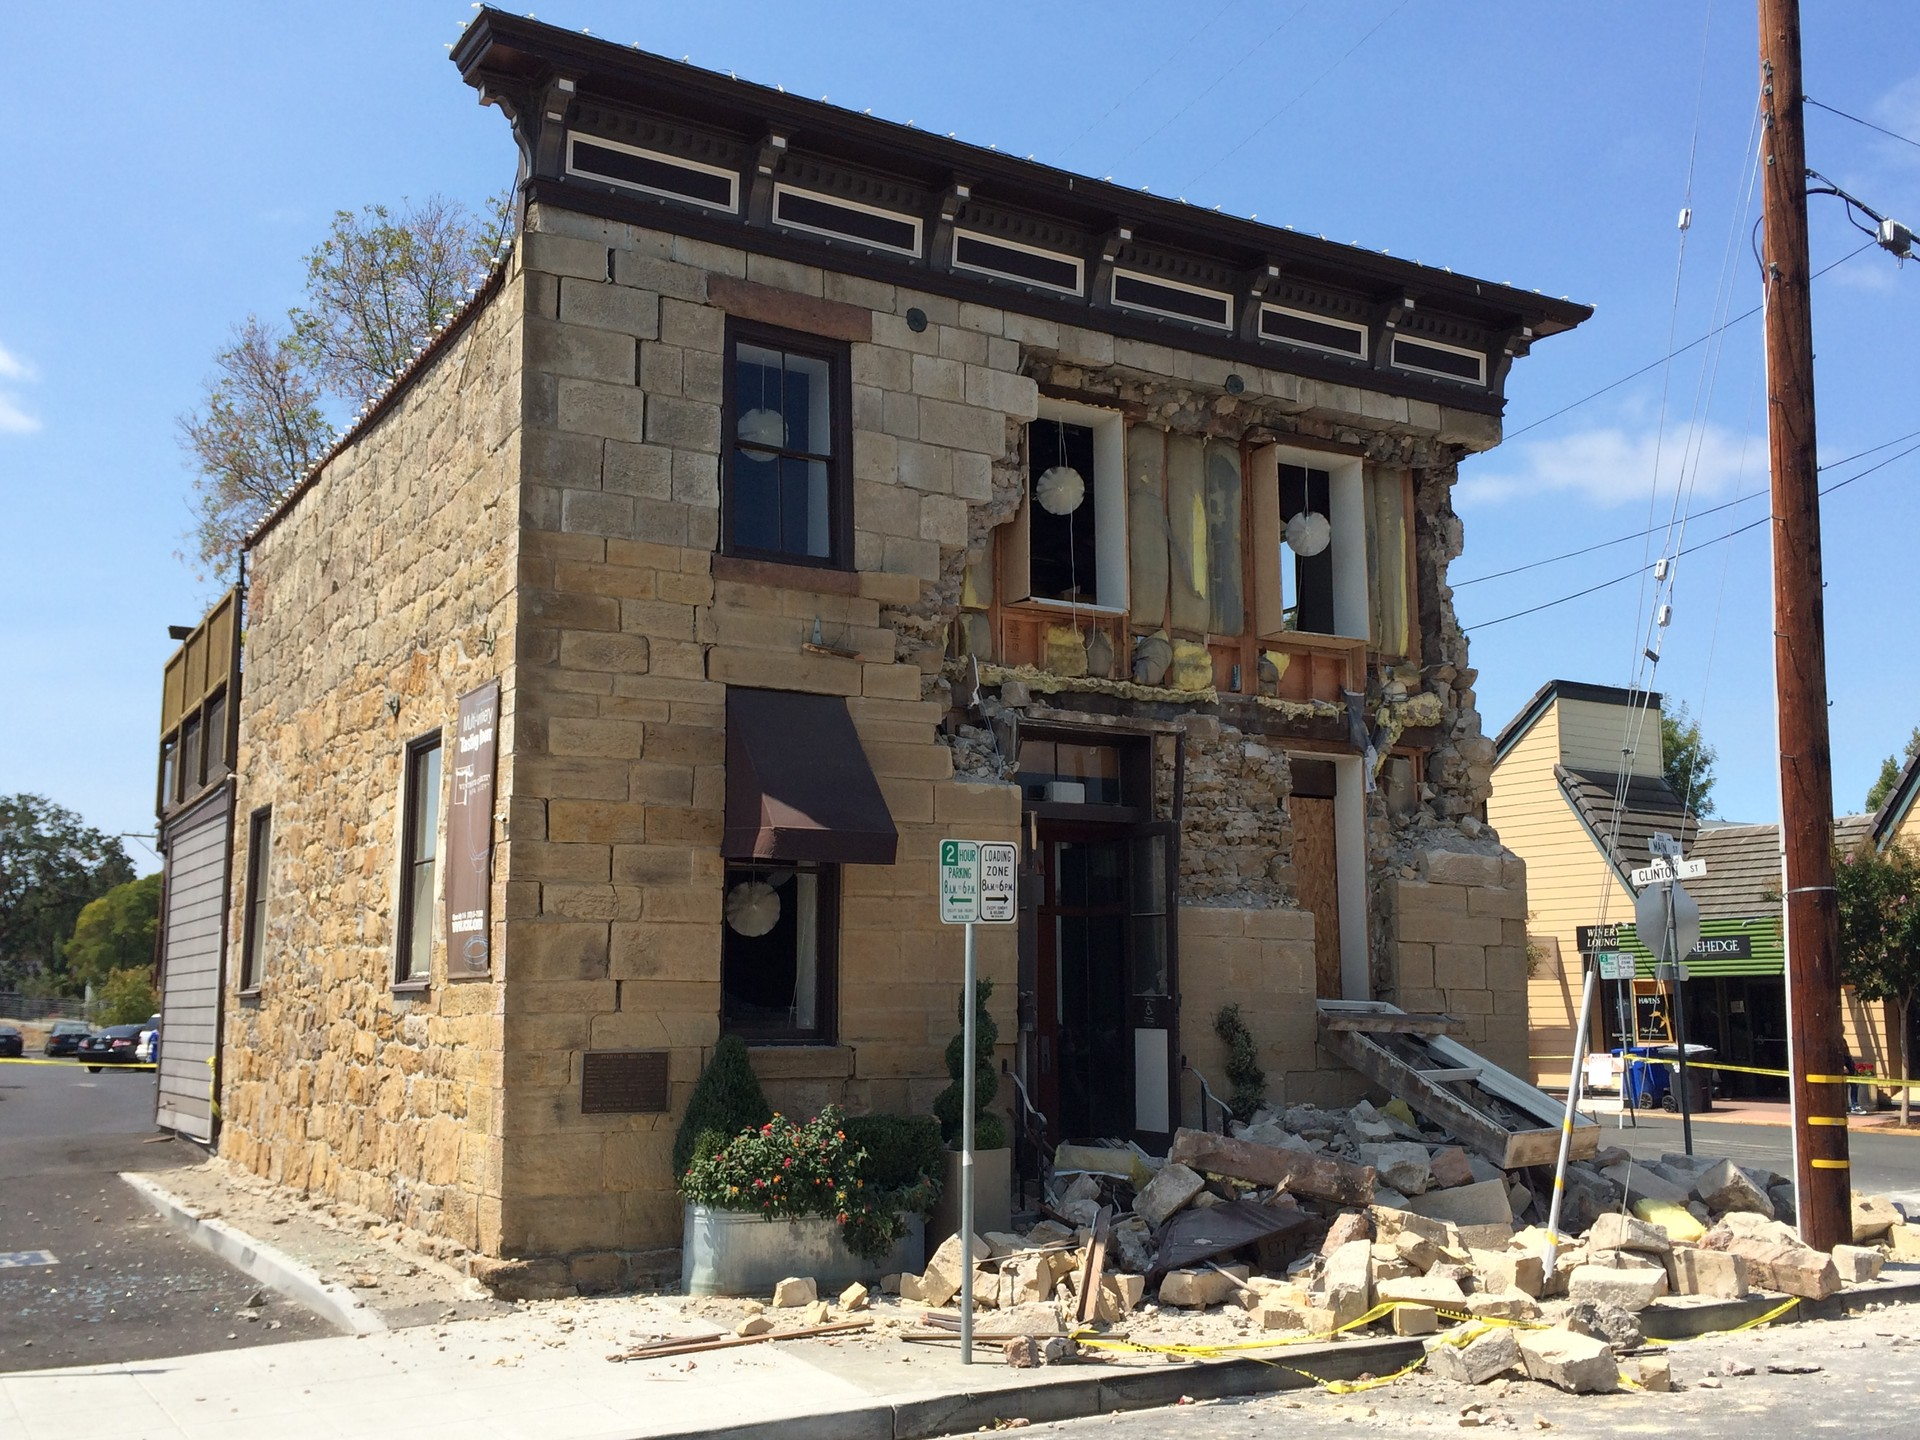 The 2014 earthquake in Napa injured about 200 people and damaged nearly two thousand buildings. Scientists say it should ring the alarm for owners of older buildings to retrofit before the next earthquake hits.